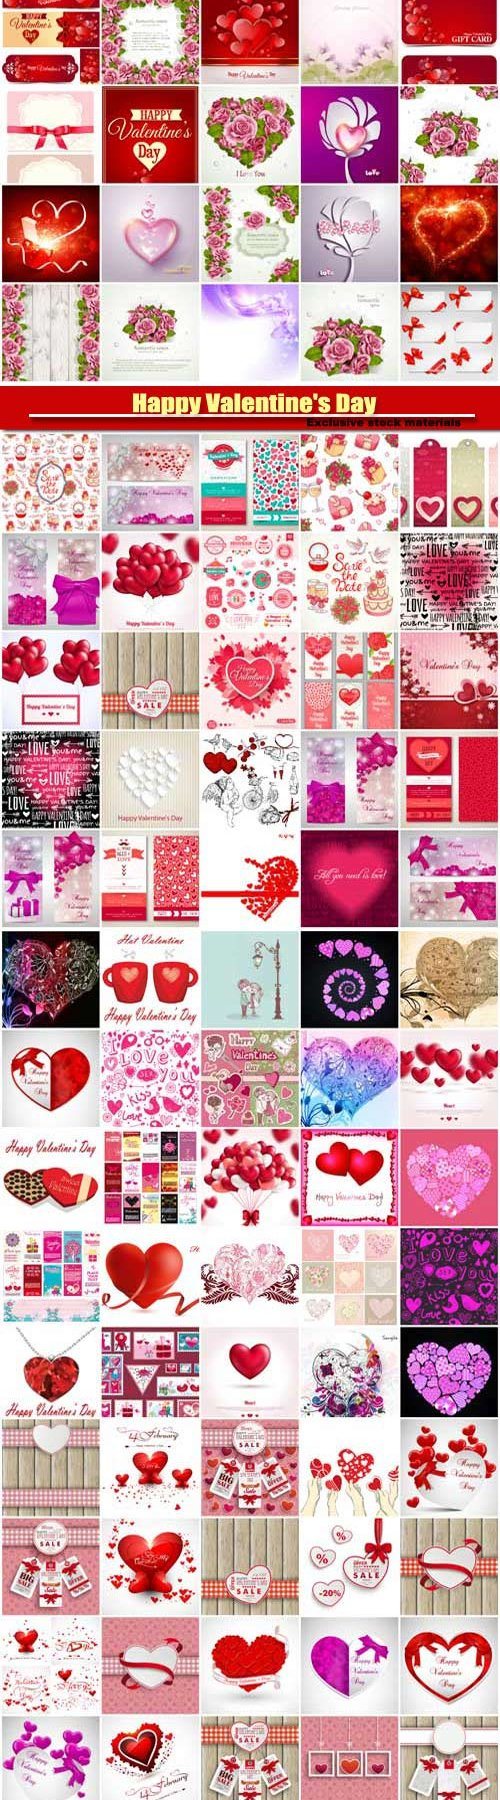 Big collection of vector festive Valentine's Day #2